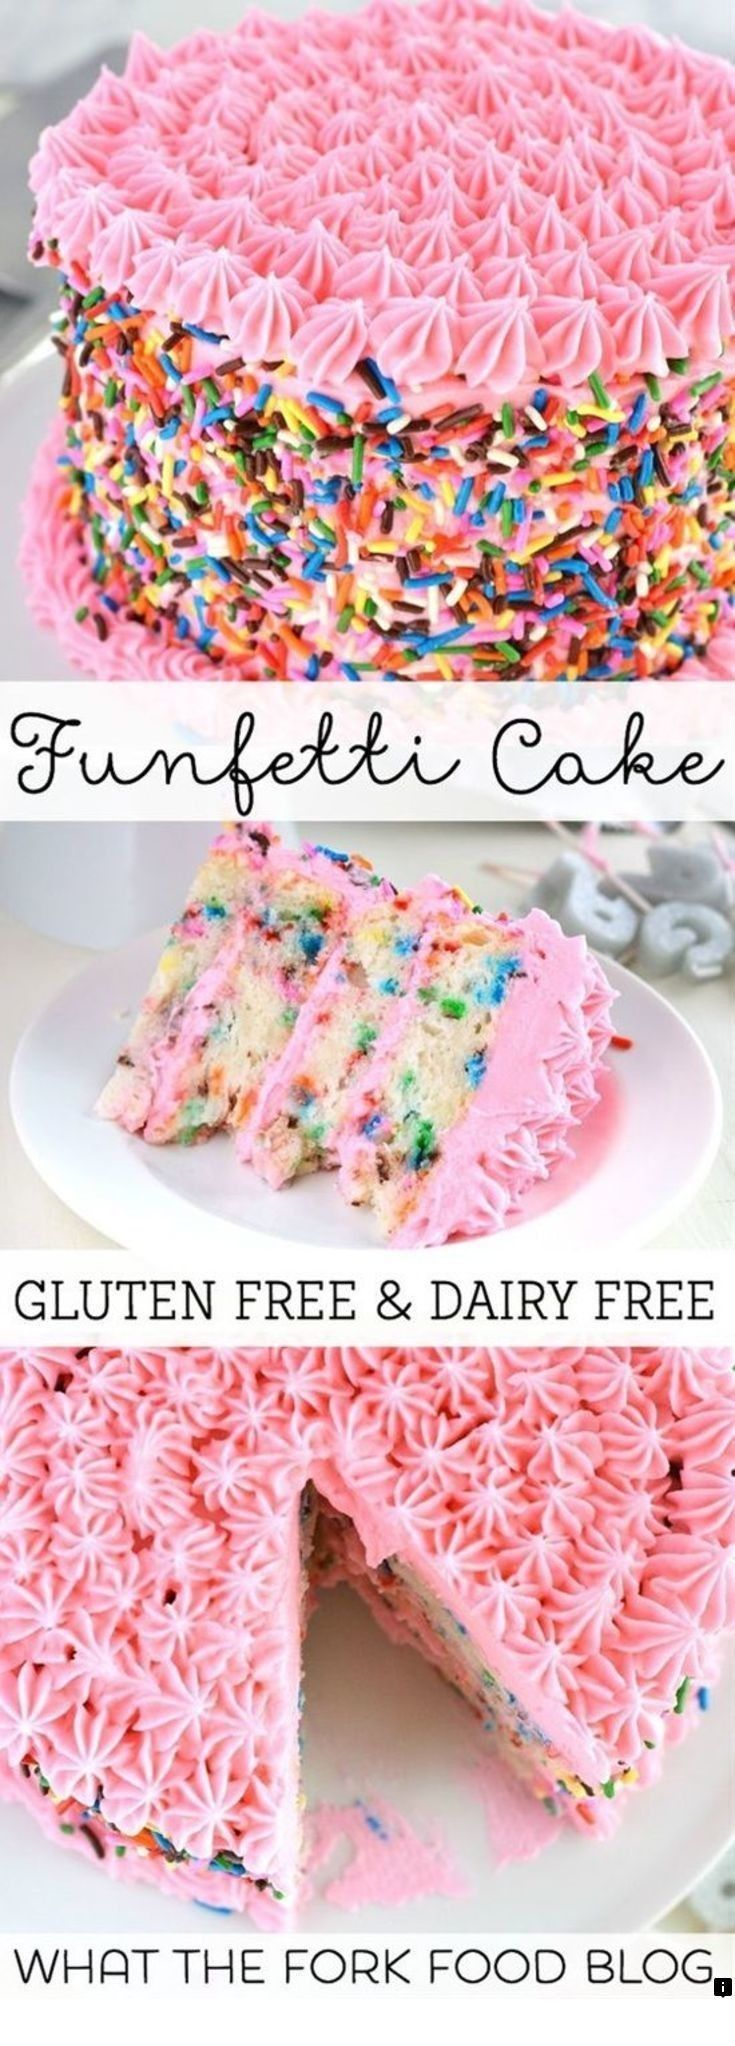 Want to know more about gluten free desserts near me